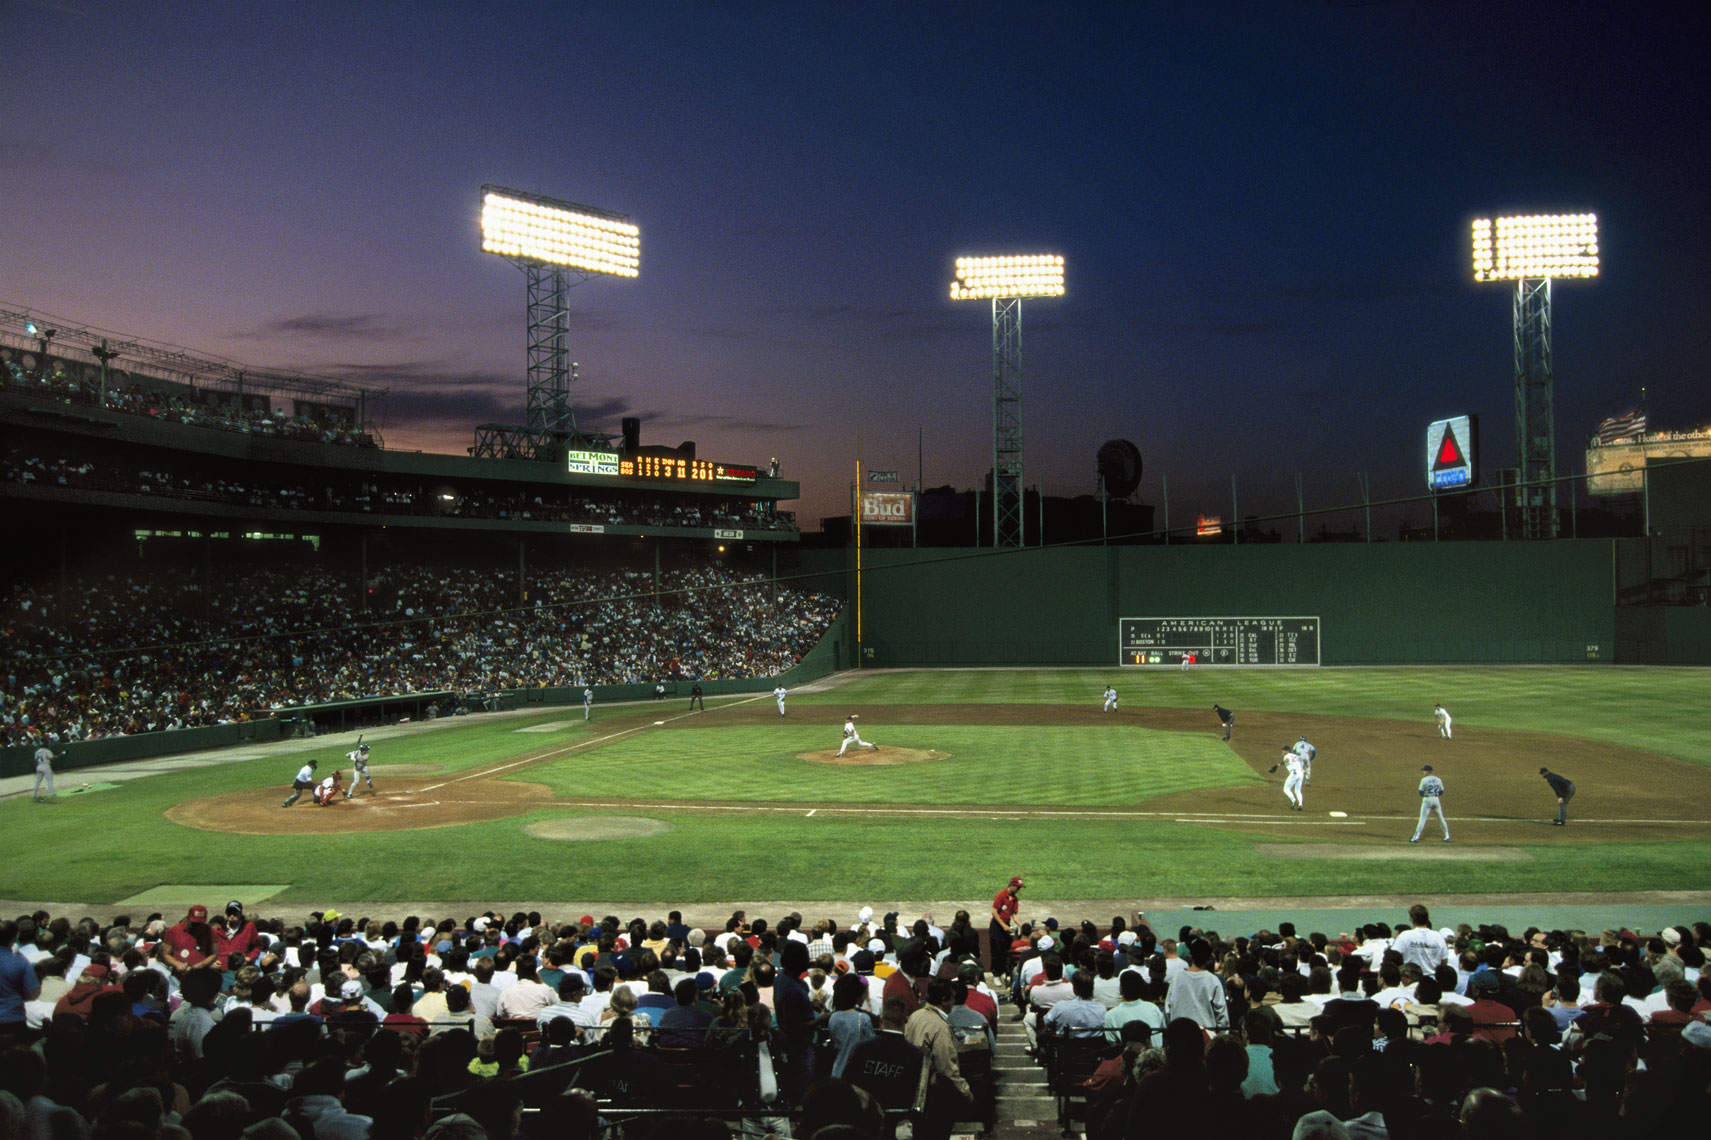 19_Summer-Night_Fenway_Park